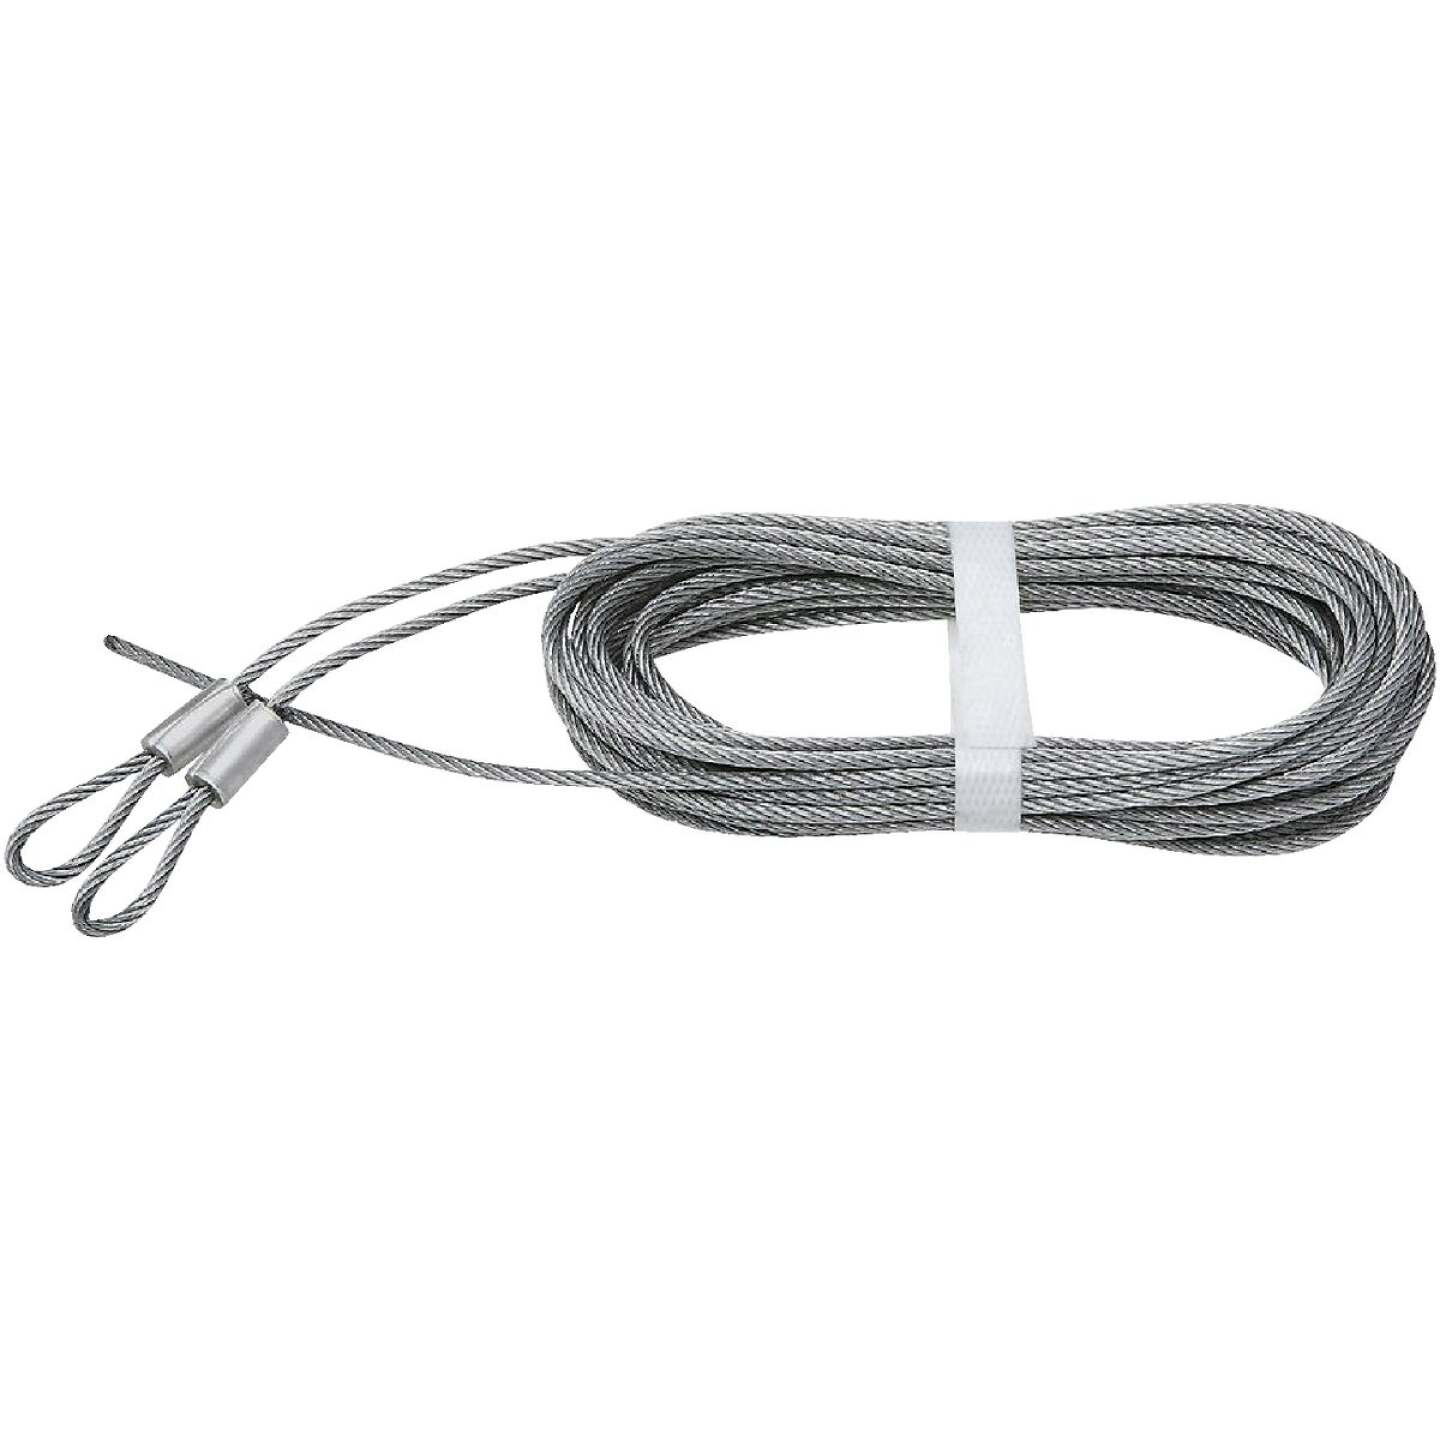 National 1/8 In. Dia. x 12 Ft. L. Garage Door Extension Cable (2 Count) Image 1